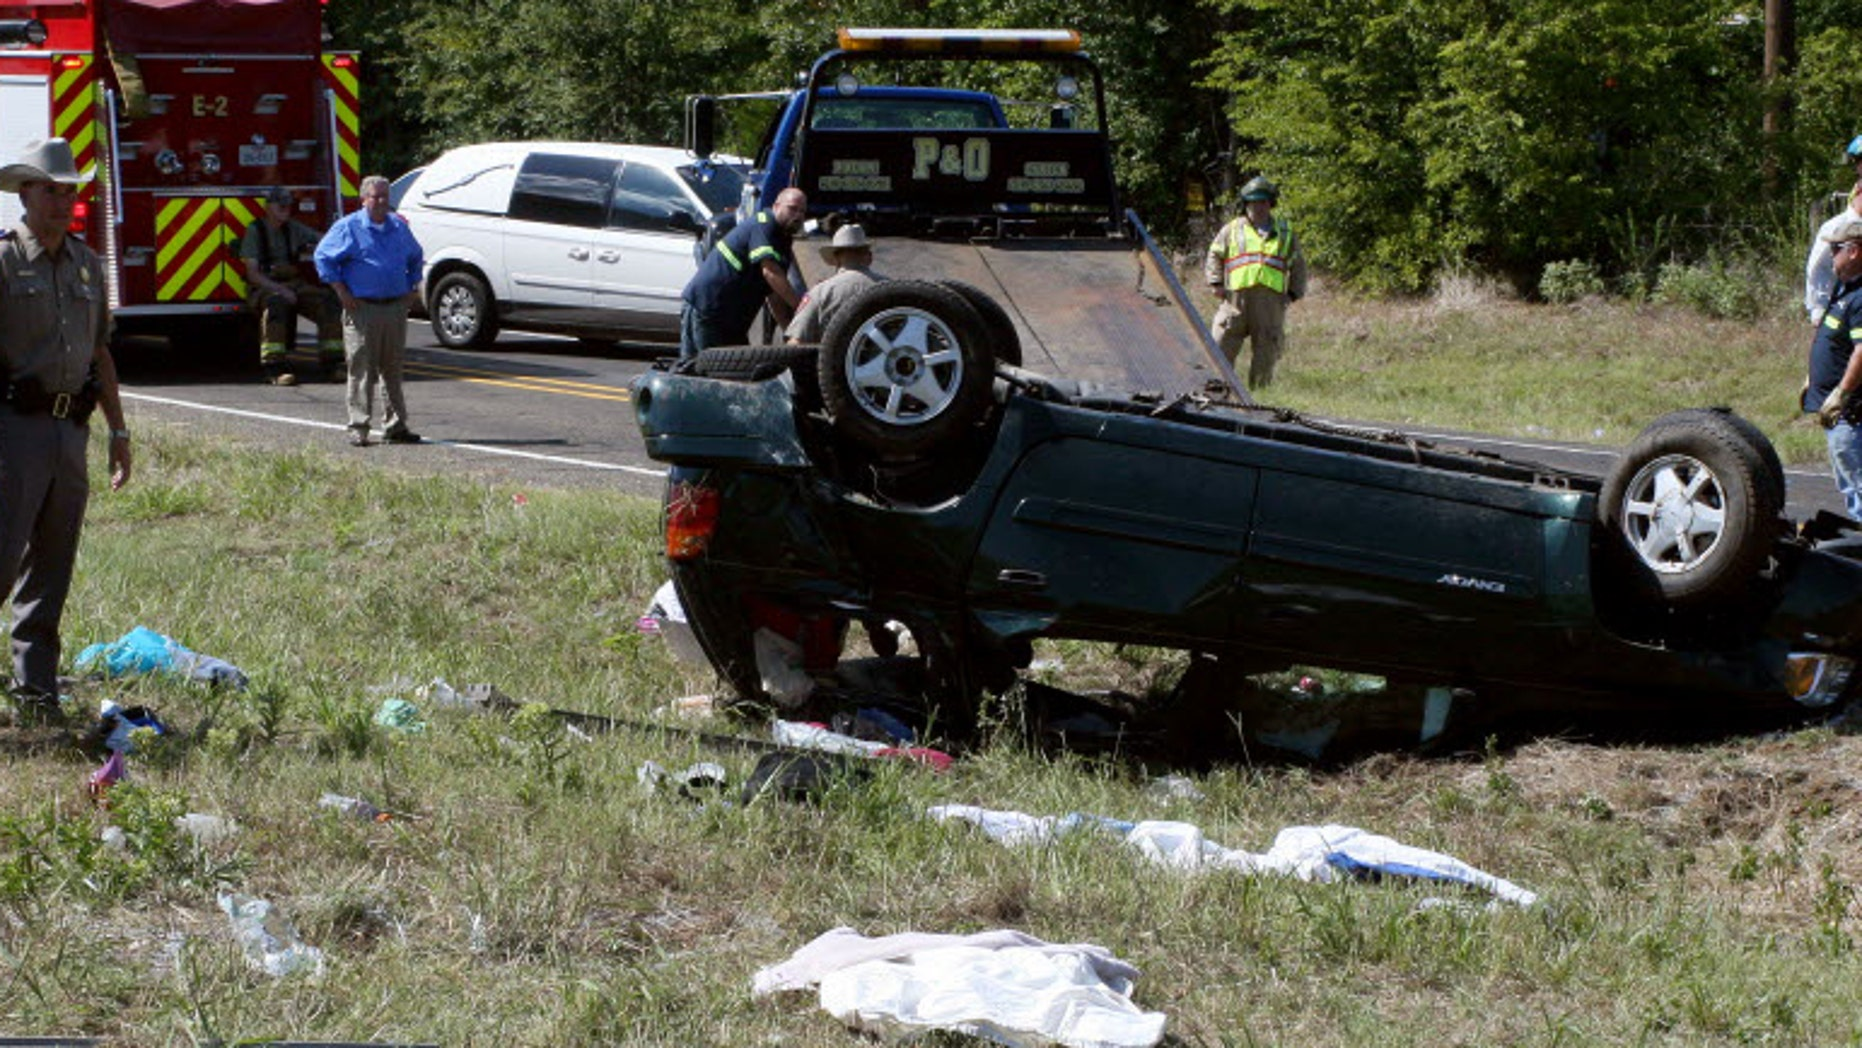 Officials work the scene of an accident in Texas that killed five children. It was caused by an overblown tire. (AP Photo/The Tyler Morning Telegraph, Kenneth Dean)